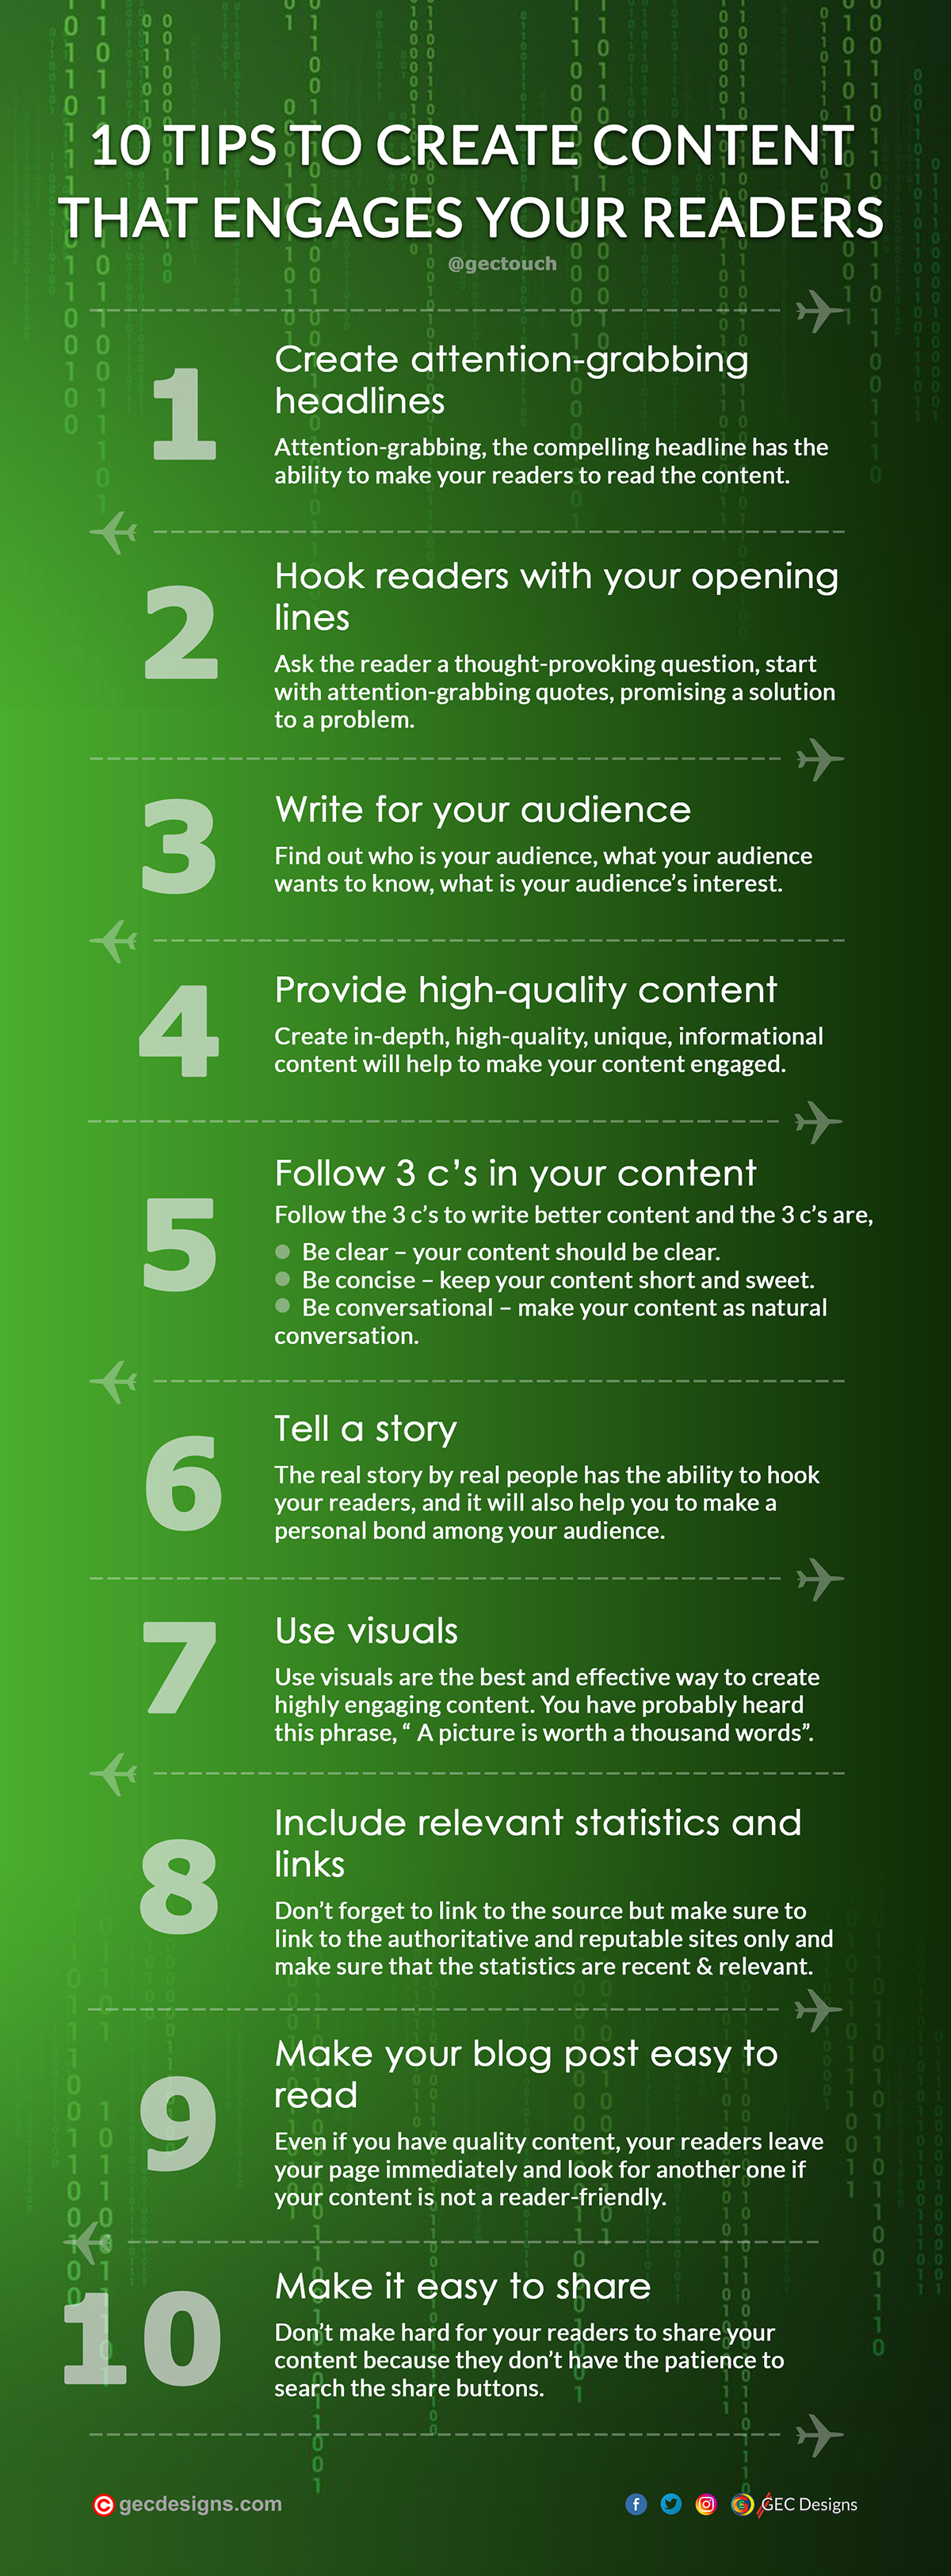 Engaging Content tips Infographic